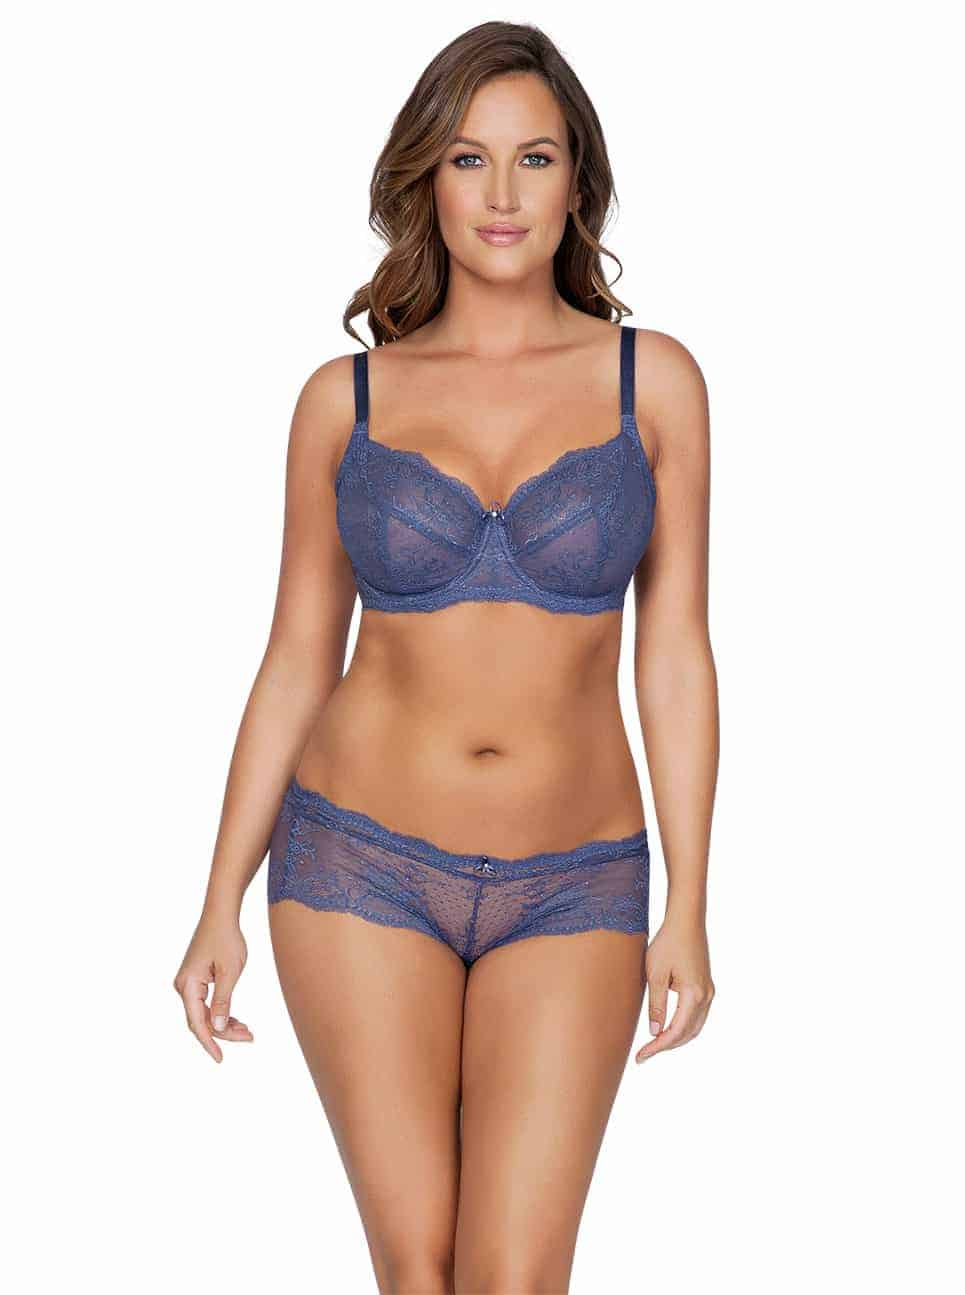 Sandrine P5352 UnlinedWire P5355 Hipster FrenchBlue Front copy 2 - Sandrine Unlined Wire Bra - French Blue - P5352